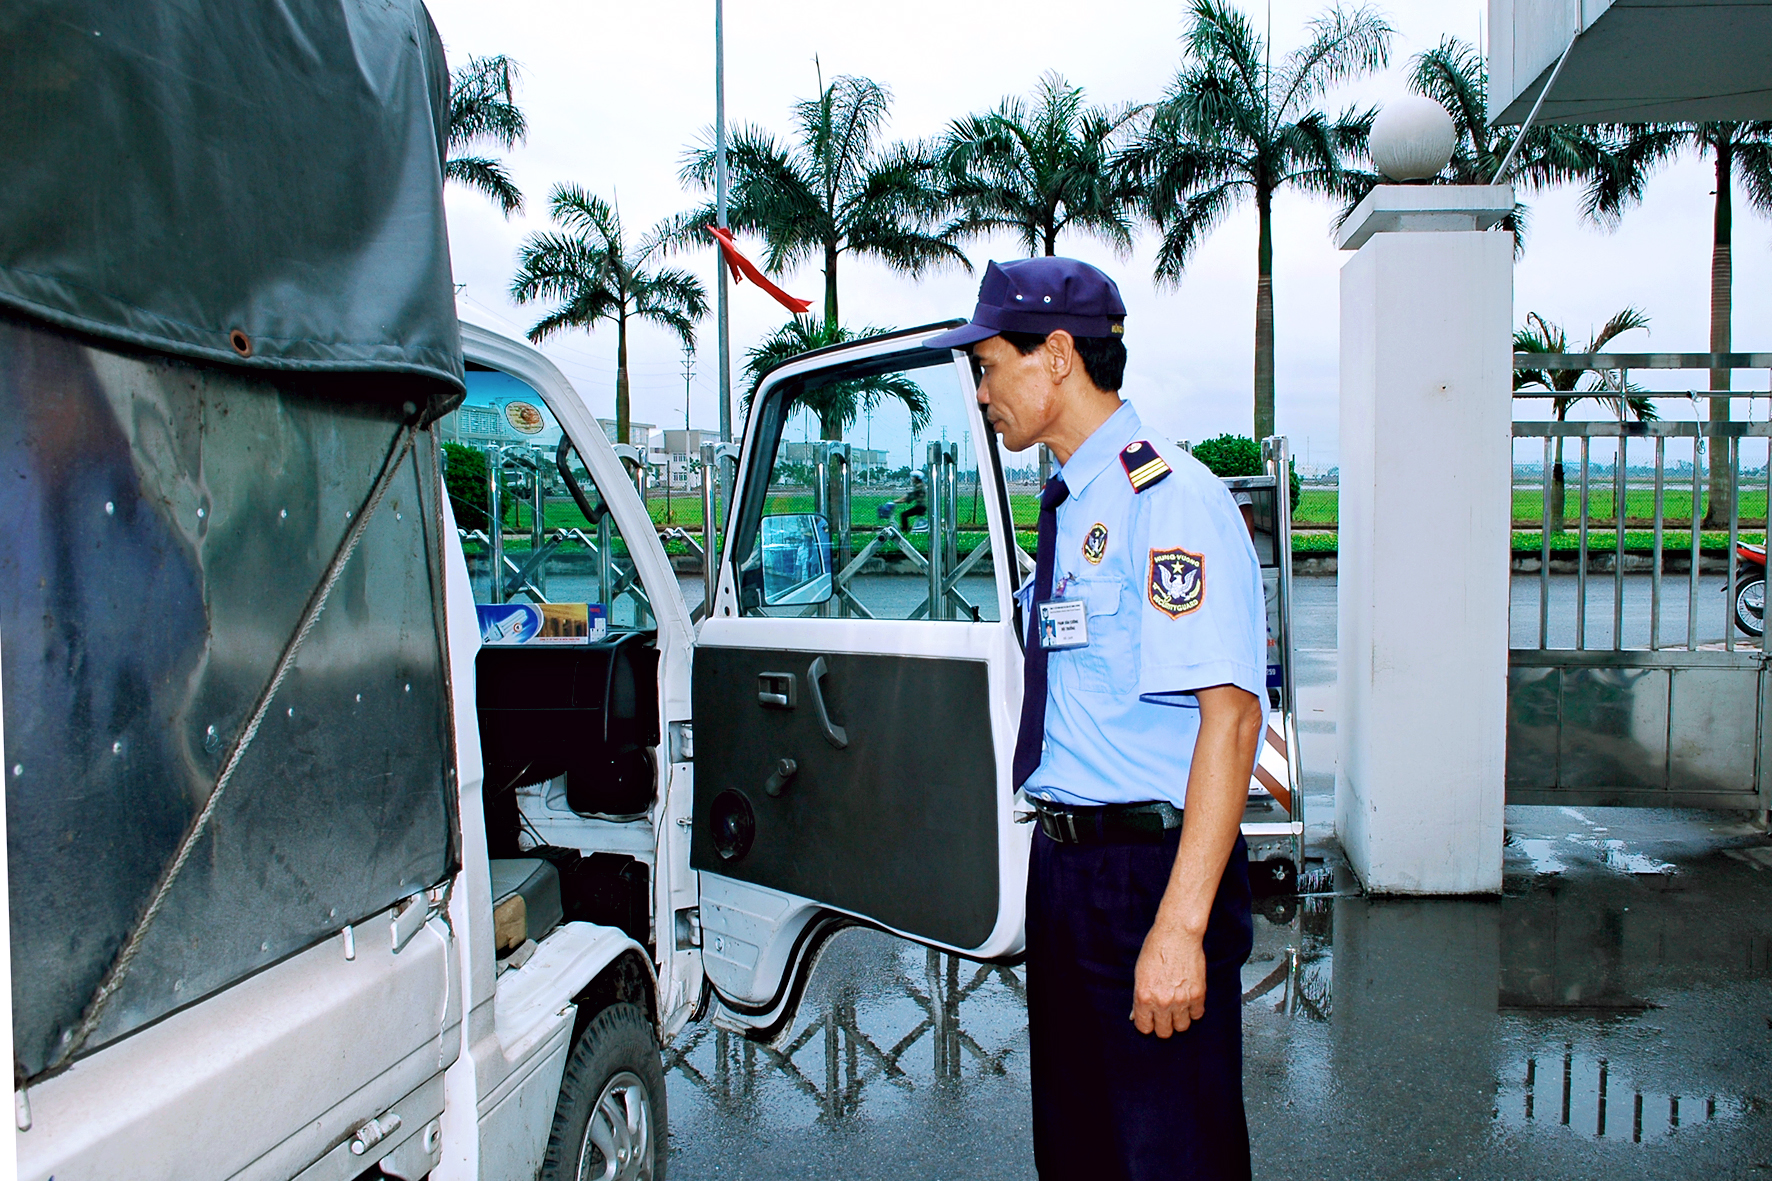 protection of escorts, escort services protect goods